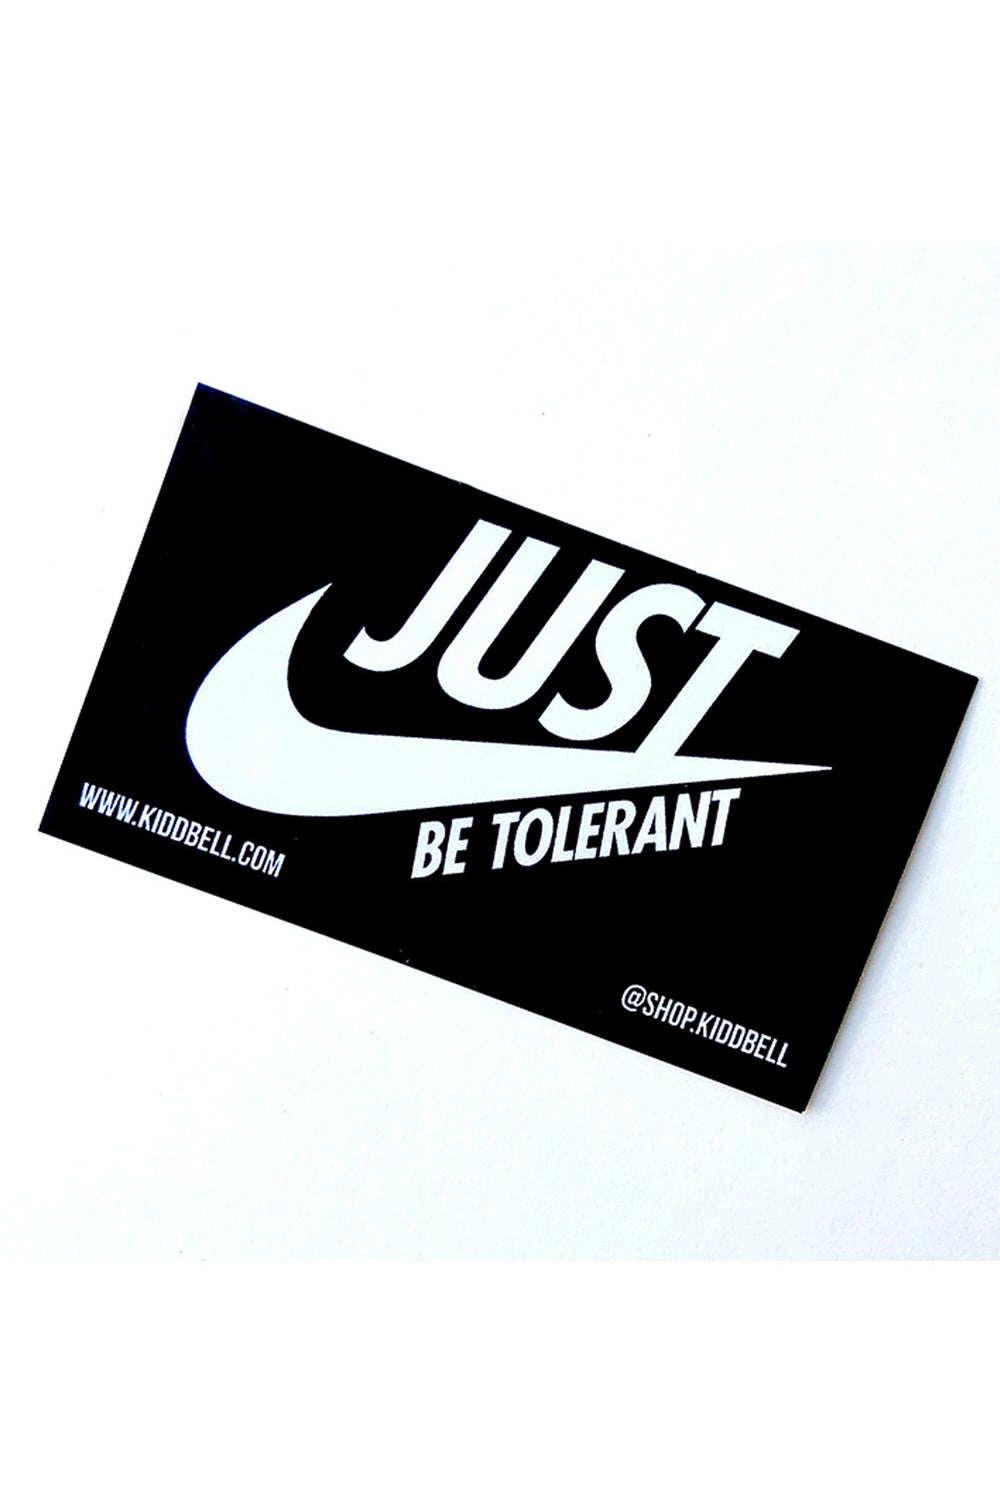 JUST BE TOLERANT STICKER